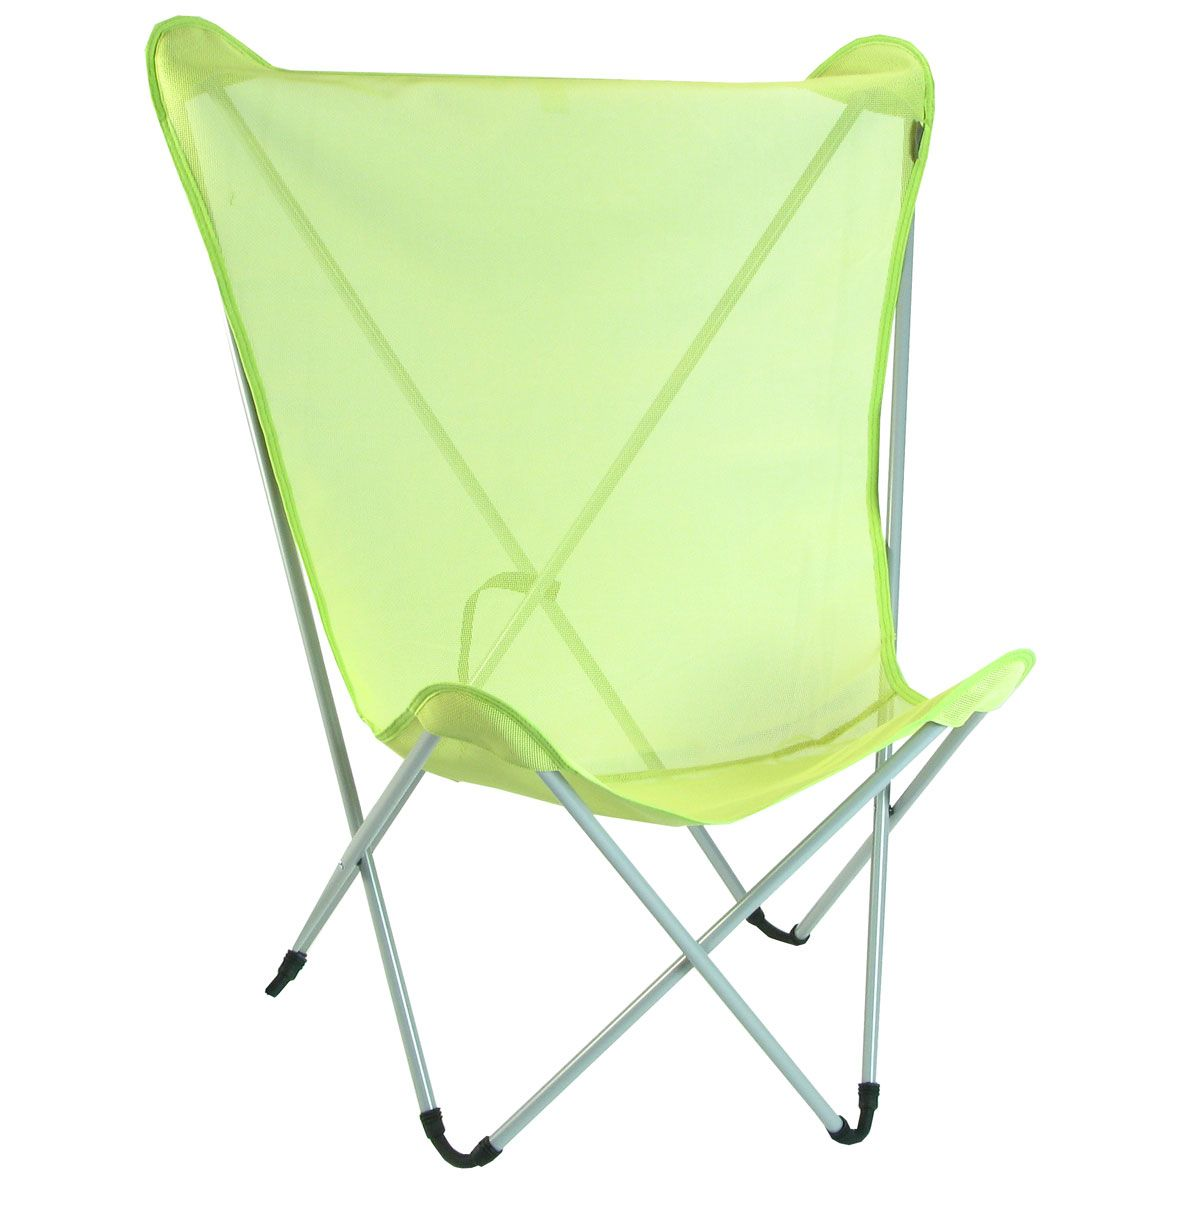 Lafuma Pop Up Chairs Office Chair Posture Recliners Folding Maxi Sling Kiwi Color